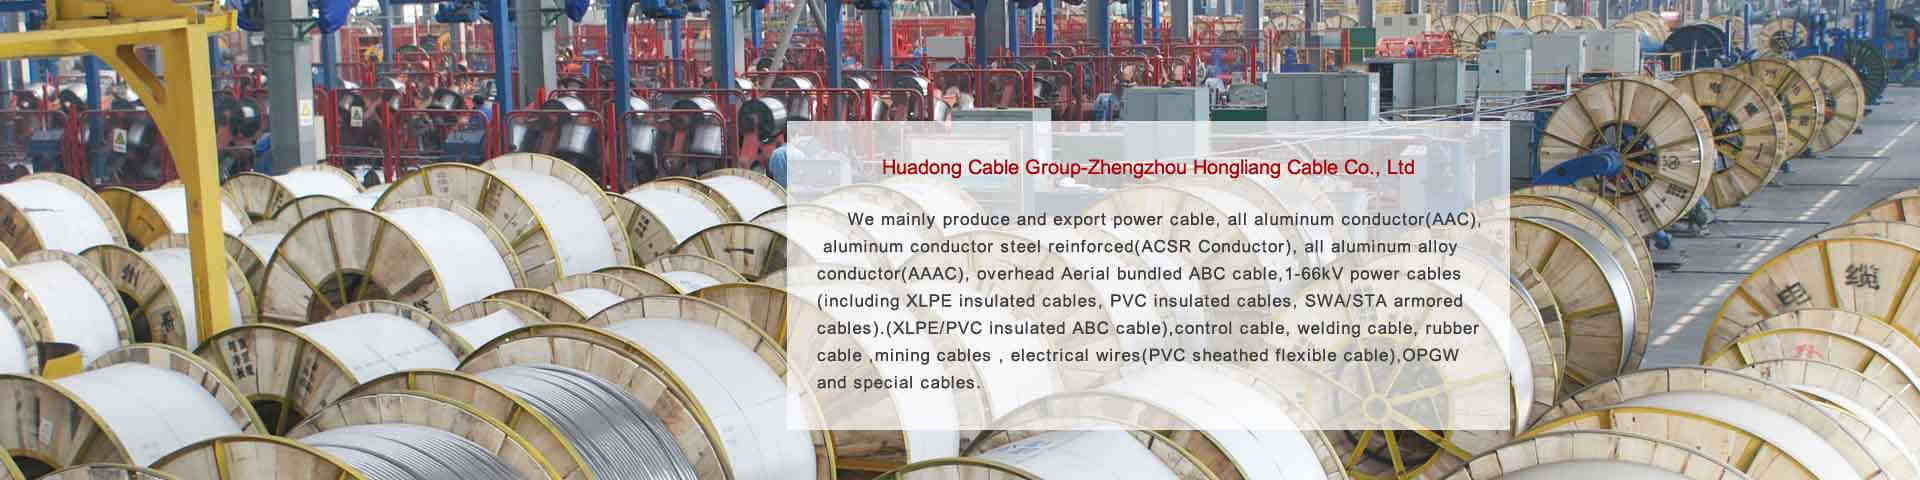 professional aerial bunched cables manufacturer